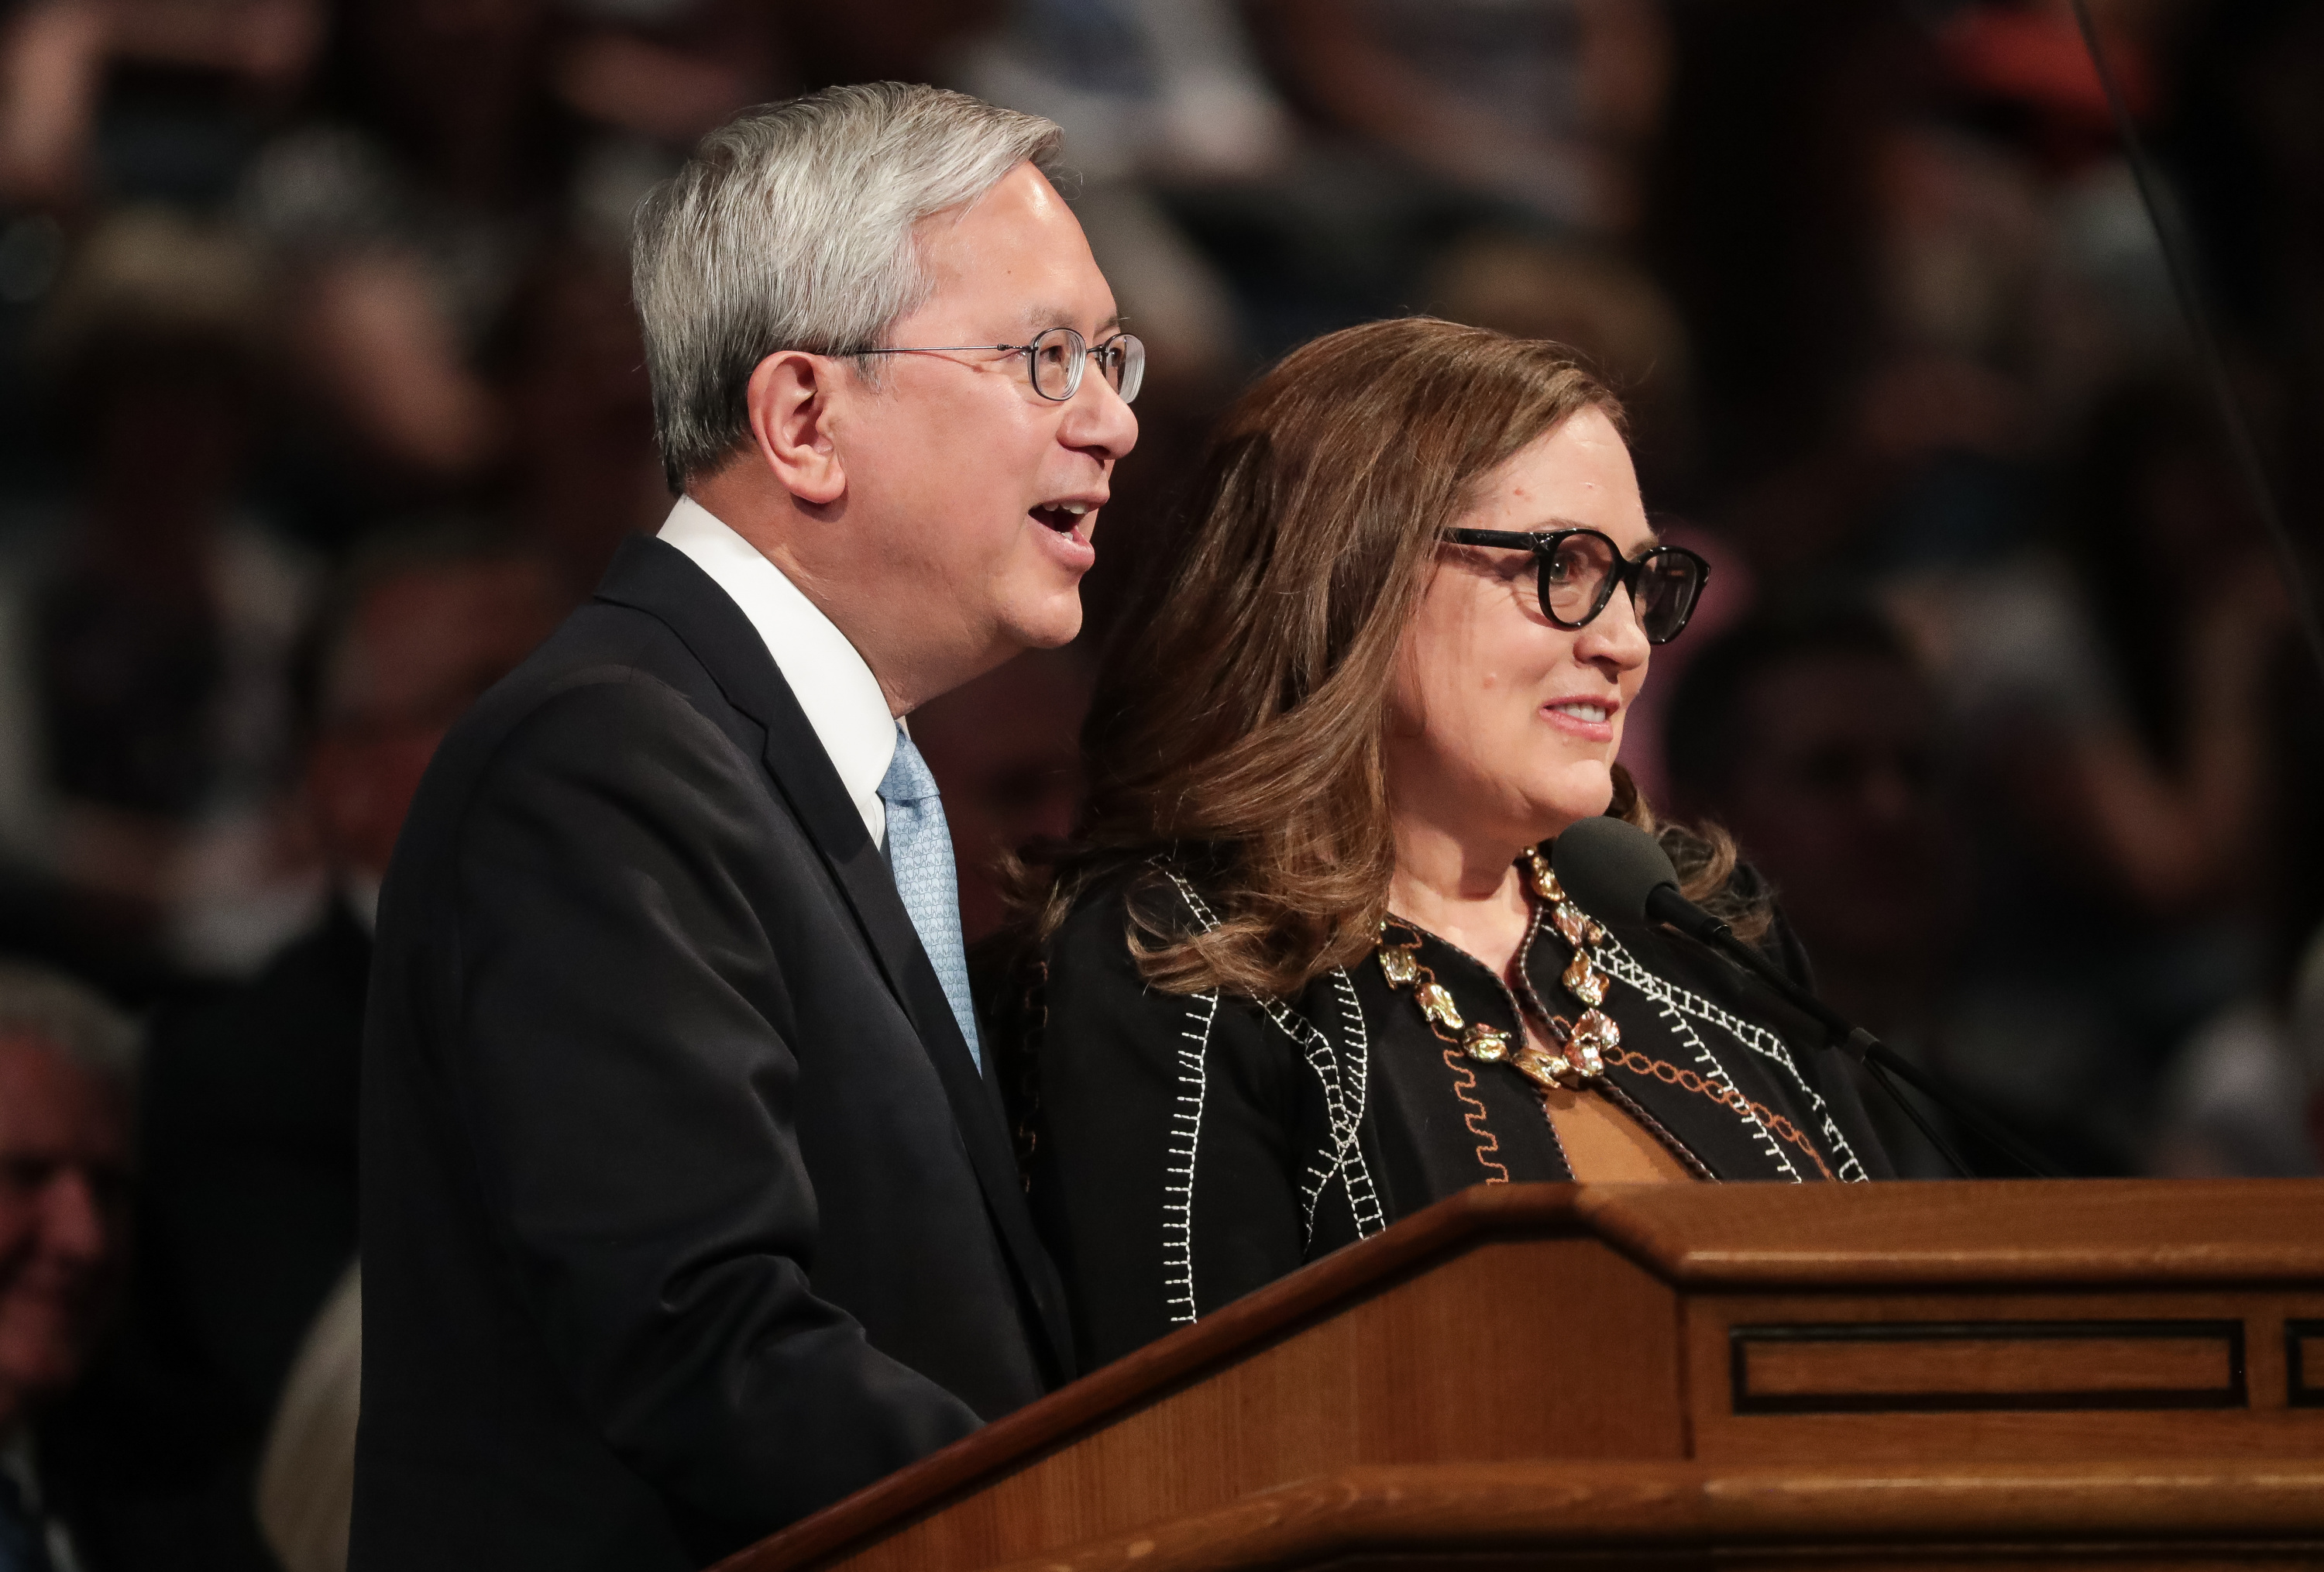 Elder Gerrit W. Gong, of the Quorum of the Twelve Apostles of the LDS Church, and his wife, Sister Susan Gong, speak at the BYU Women's Conference at the Marriott Center in Provo on Friday, May 4, 2018.